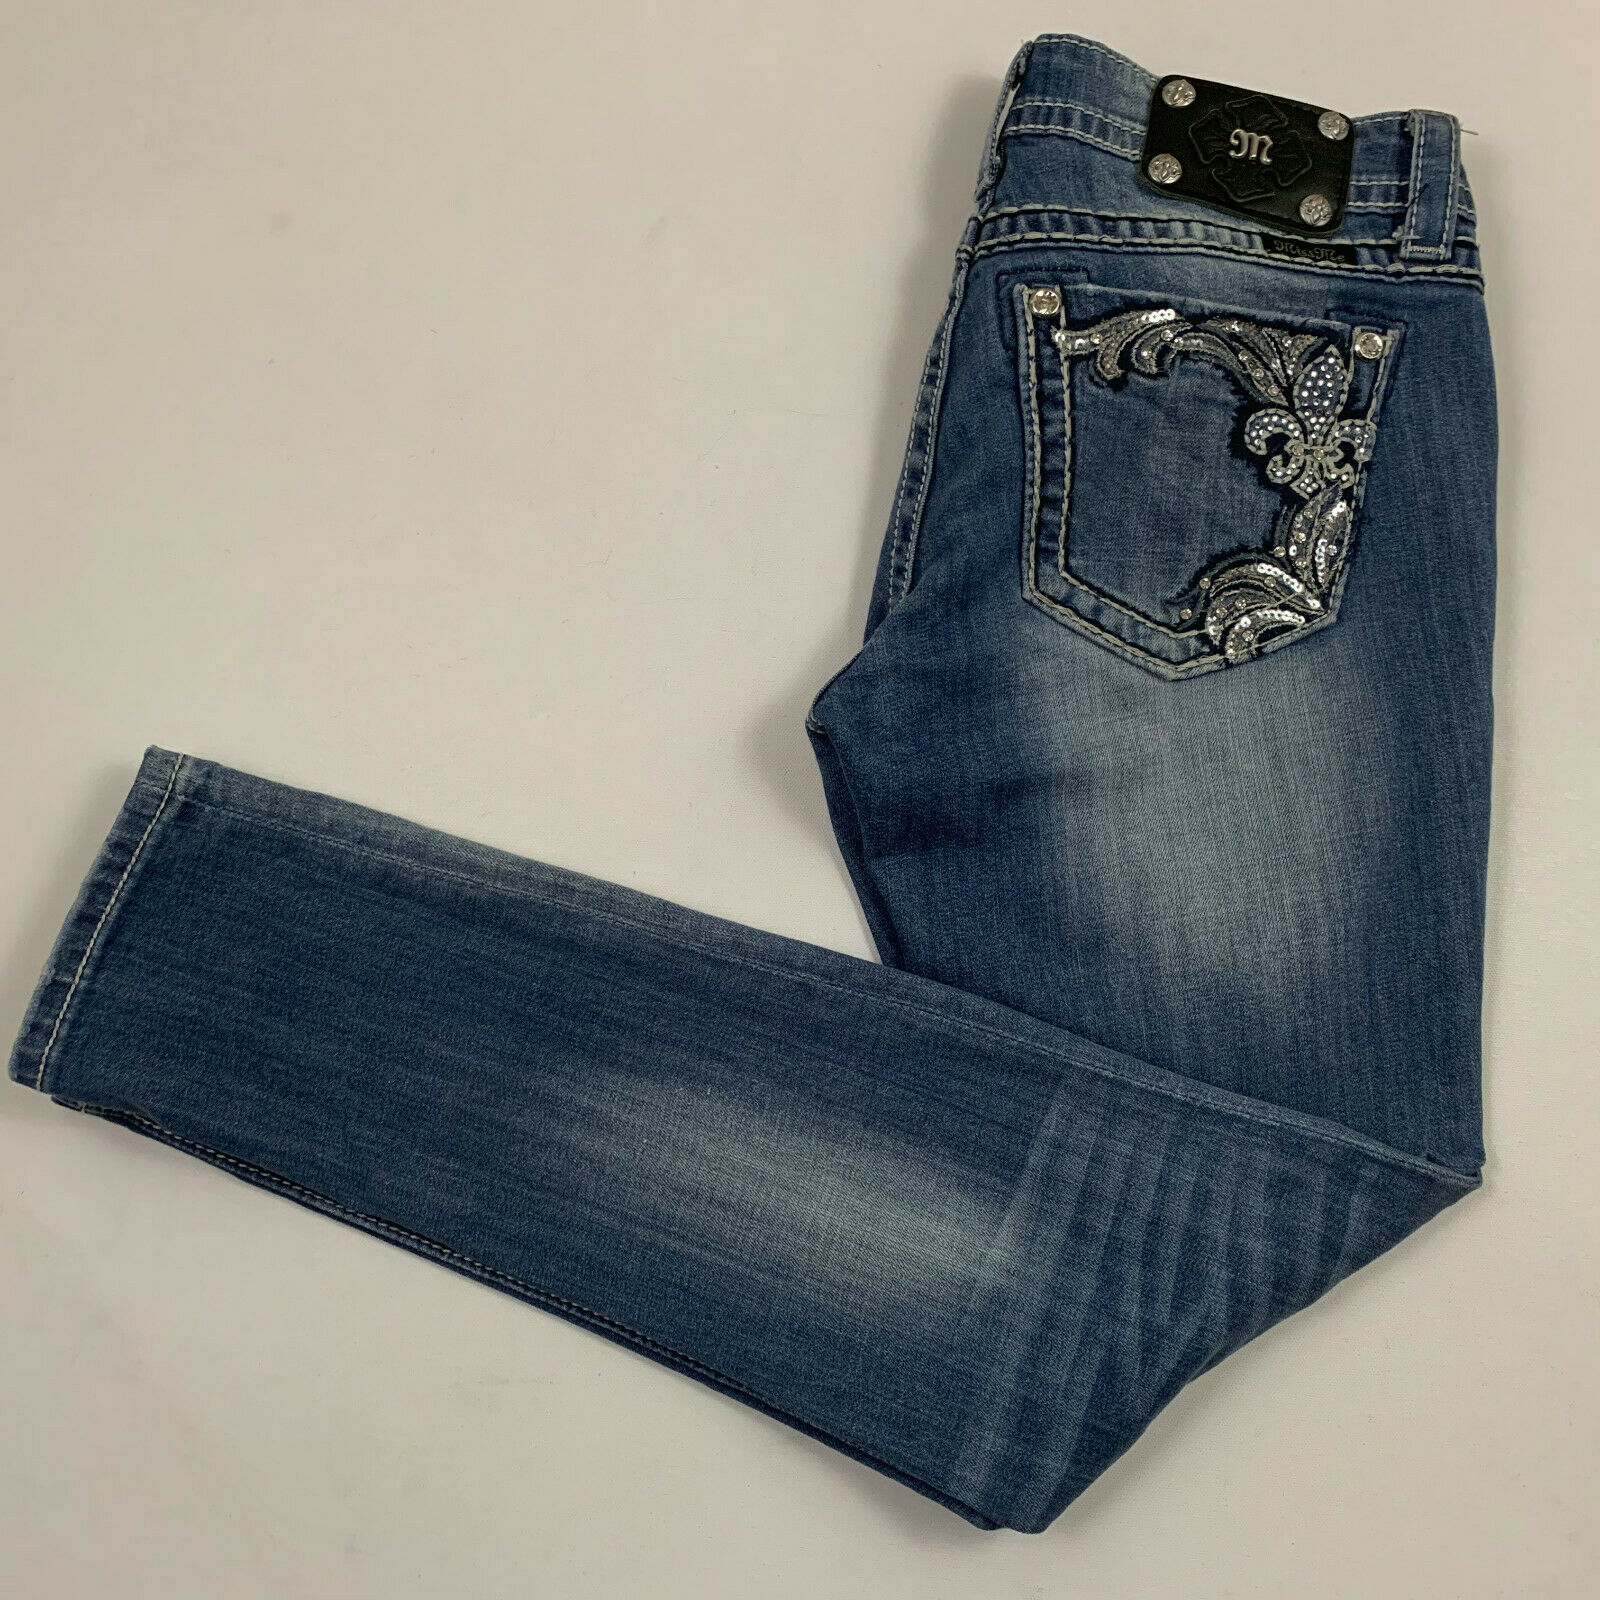 MISS ME womens 28x31 jeans JP5853AK ANKLE SKINNY distressed holes ripped bluee